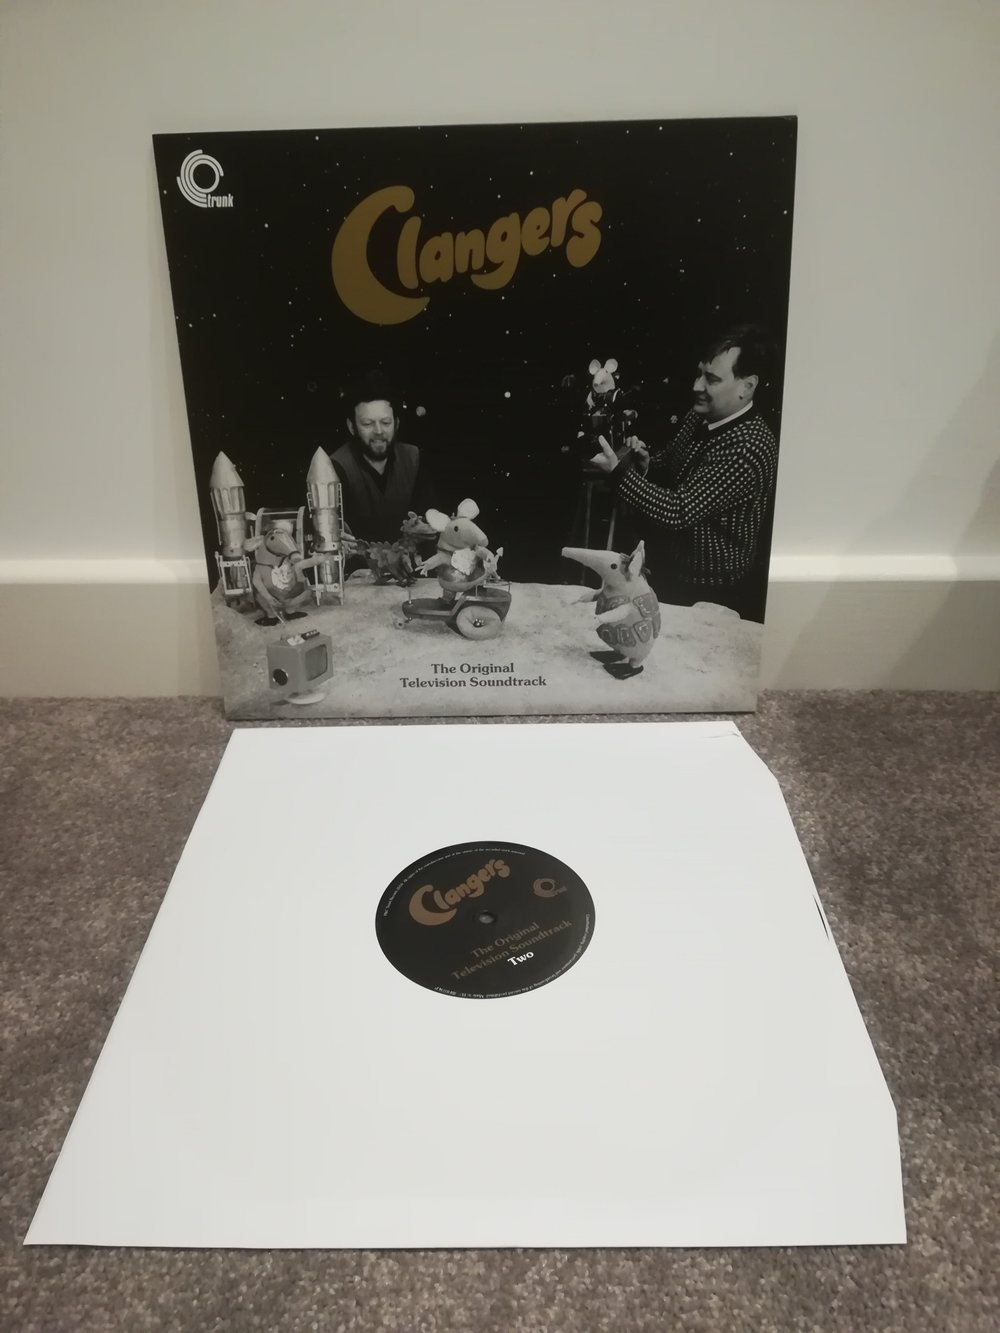 Clangers Soundtrack on Vinyl